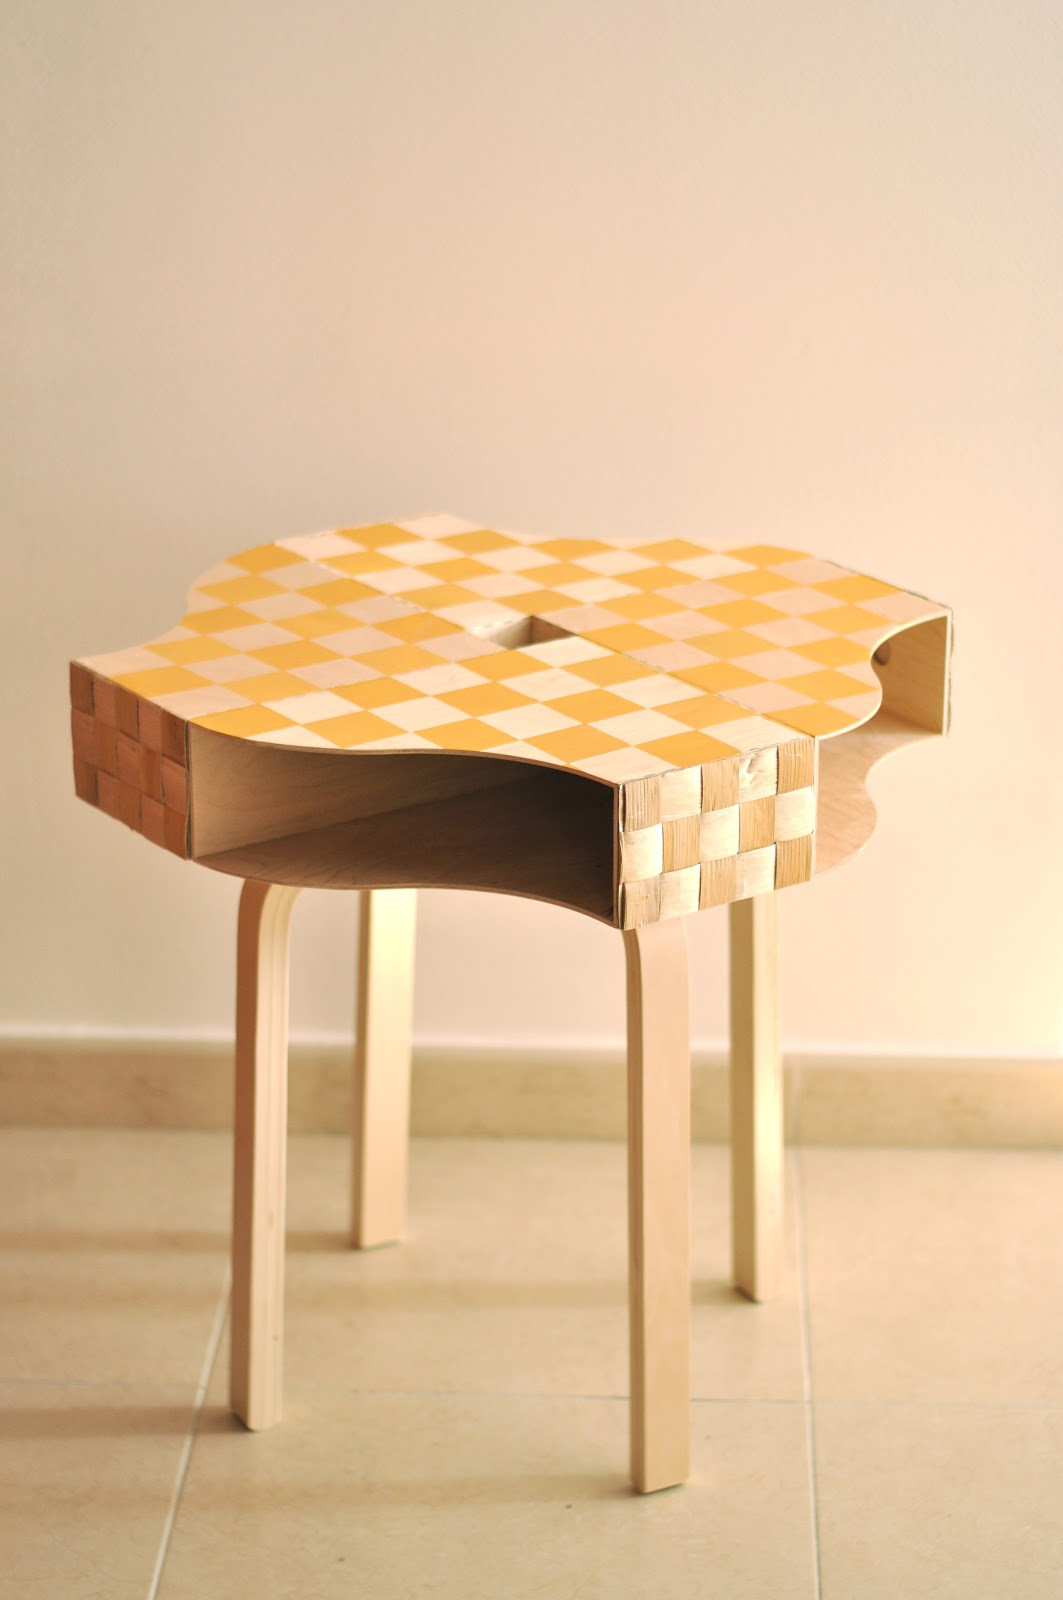 Best ideas about DIY D&D Table . Save or Pin EmerJa DIY Ikea Hack Table Now.